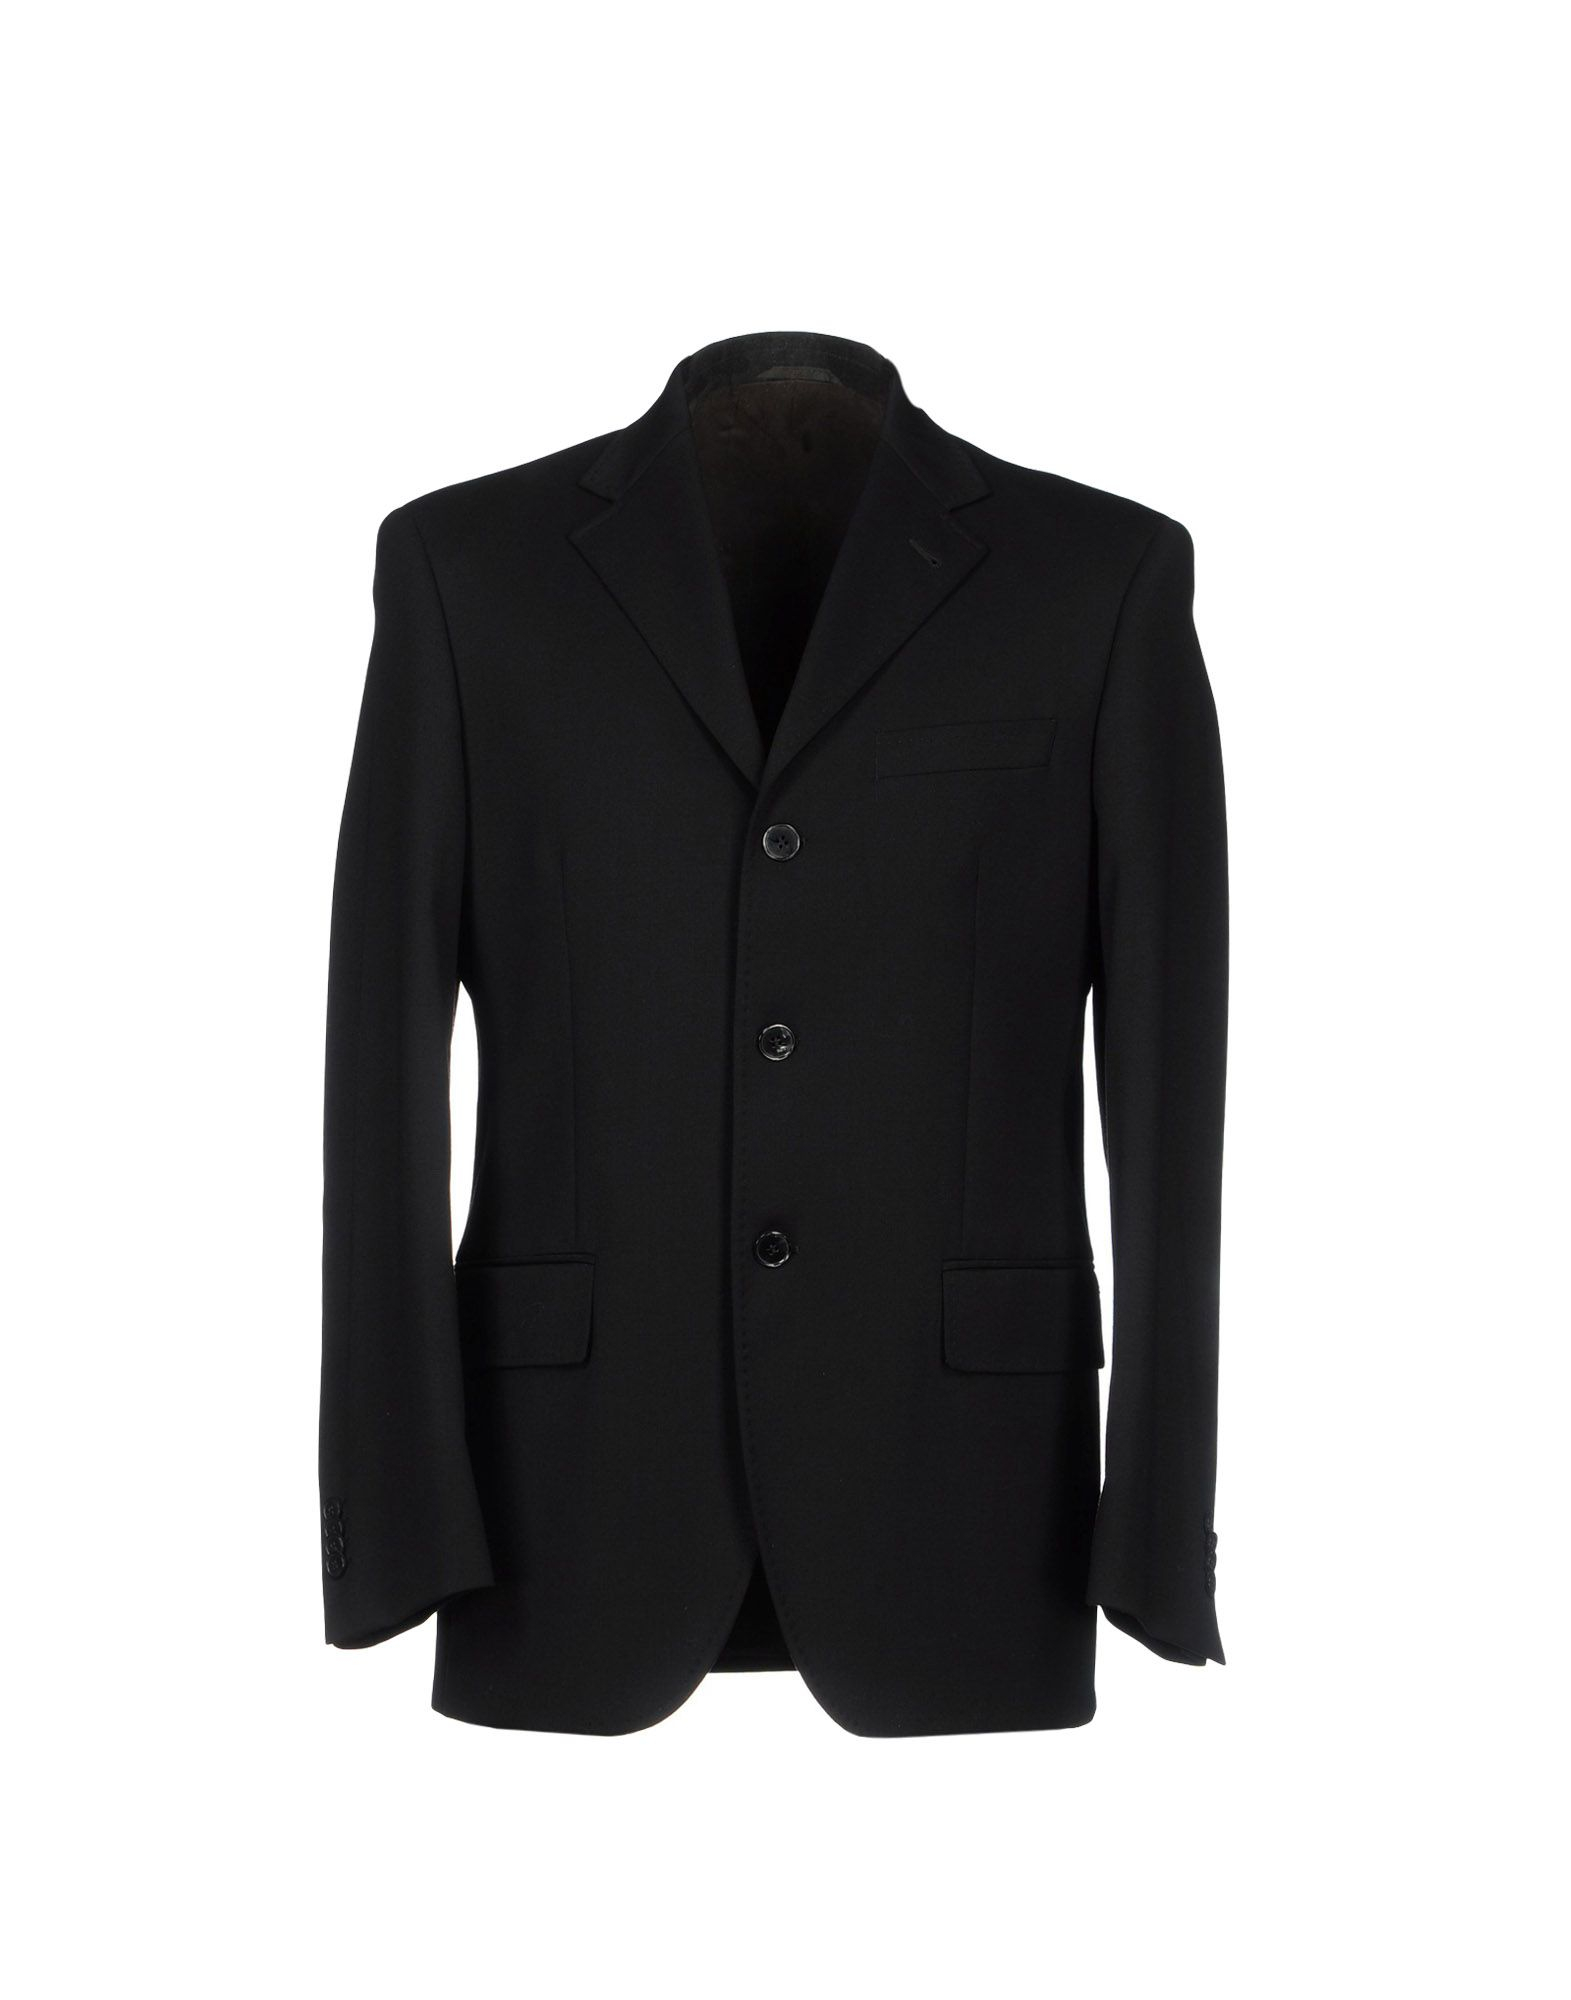 berry black single men Find women's dresses online, you can buy cheap fashion dresses from a huge selection on berrylookcom with worldwide shipping.